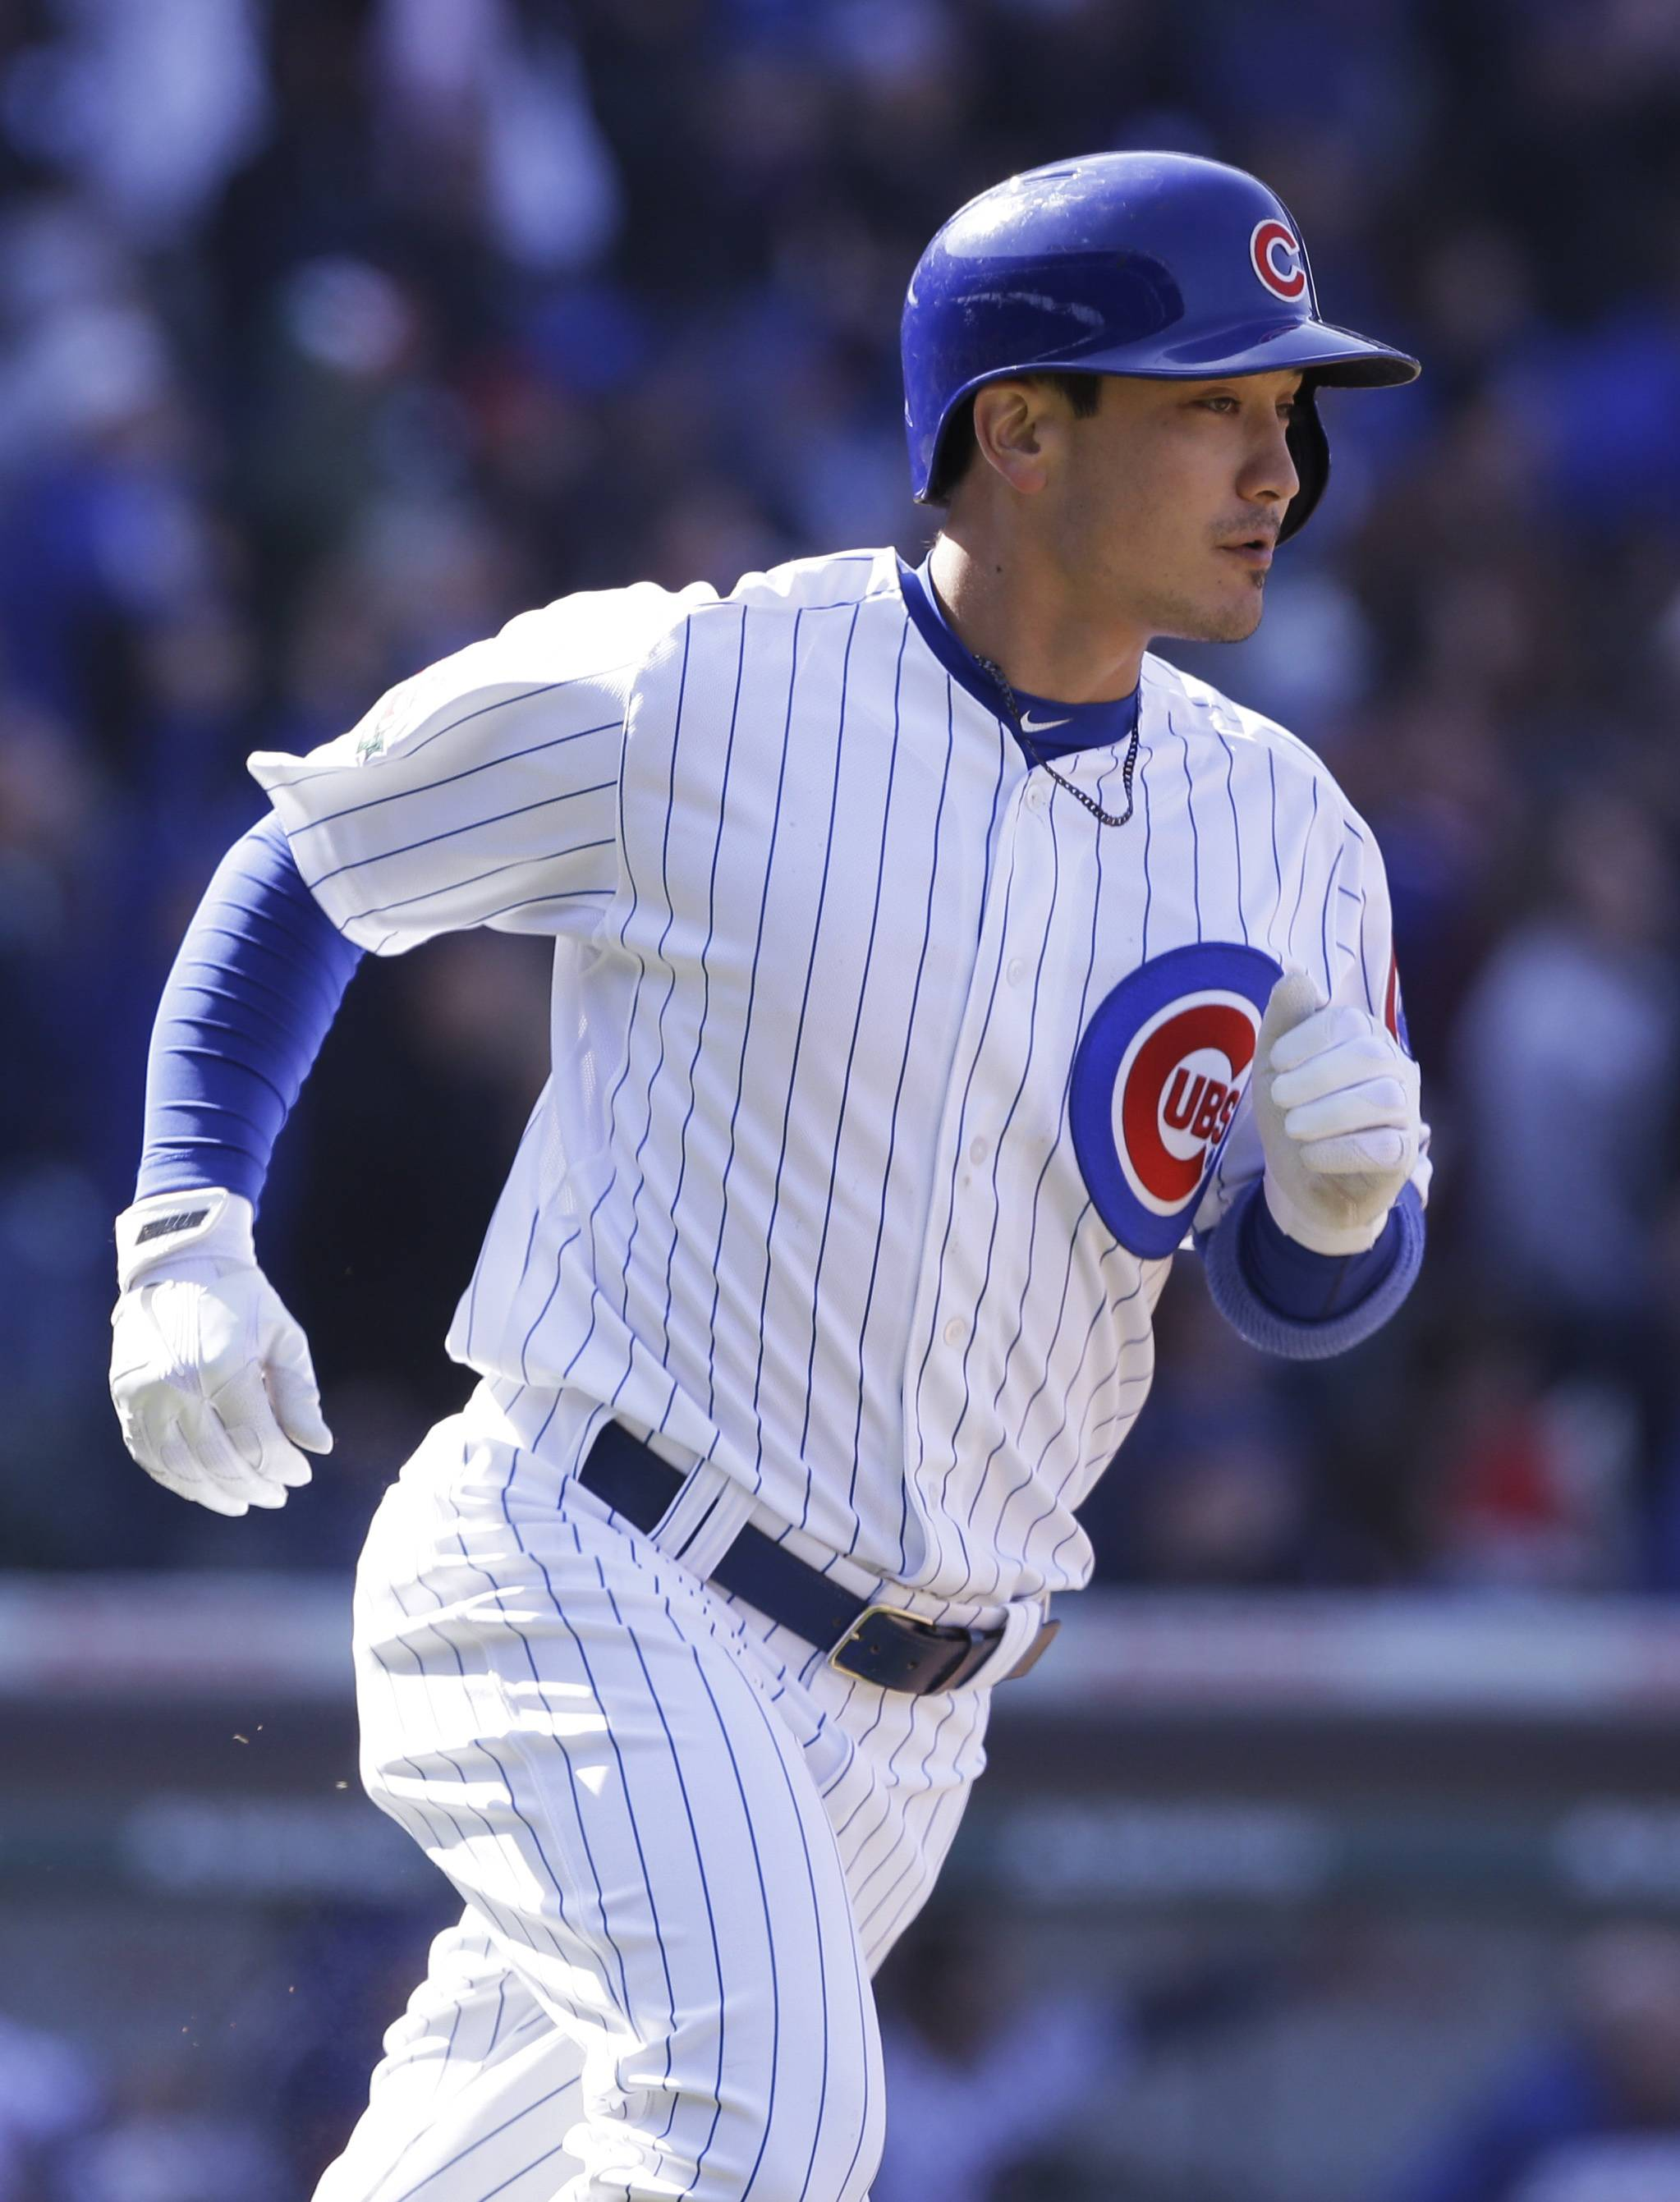 The Cubs removed veteran Darwin Barney from their roster, designating the second baseman for assignment as they activated Emilio Bonifacio off the disabled list.